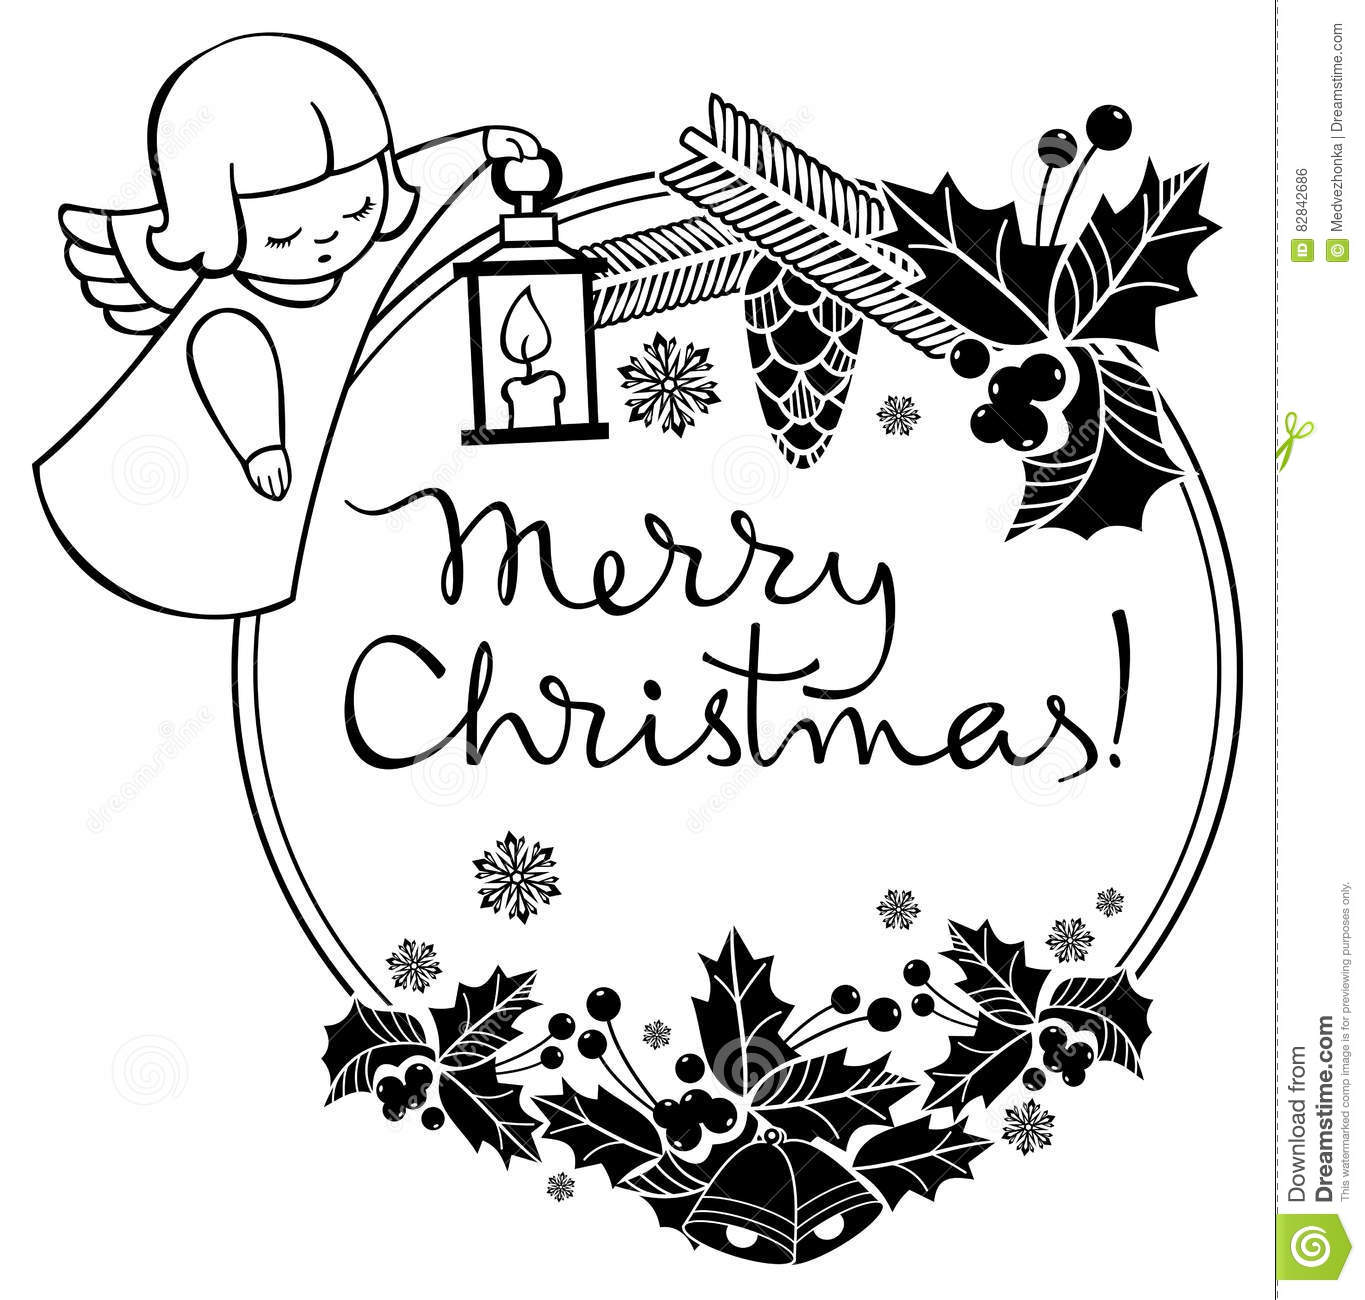 The Best Christmas Clipart Black And White